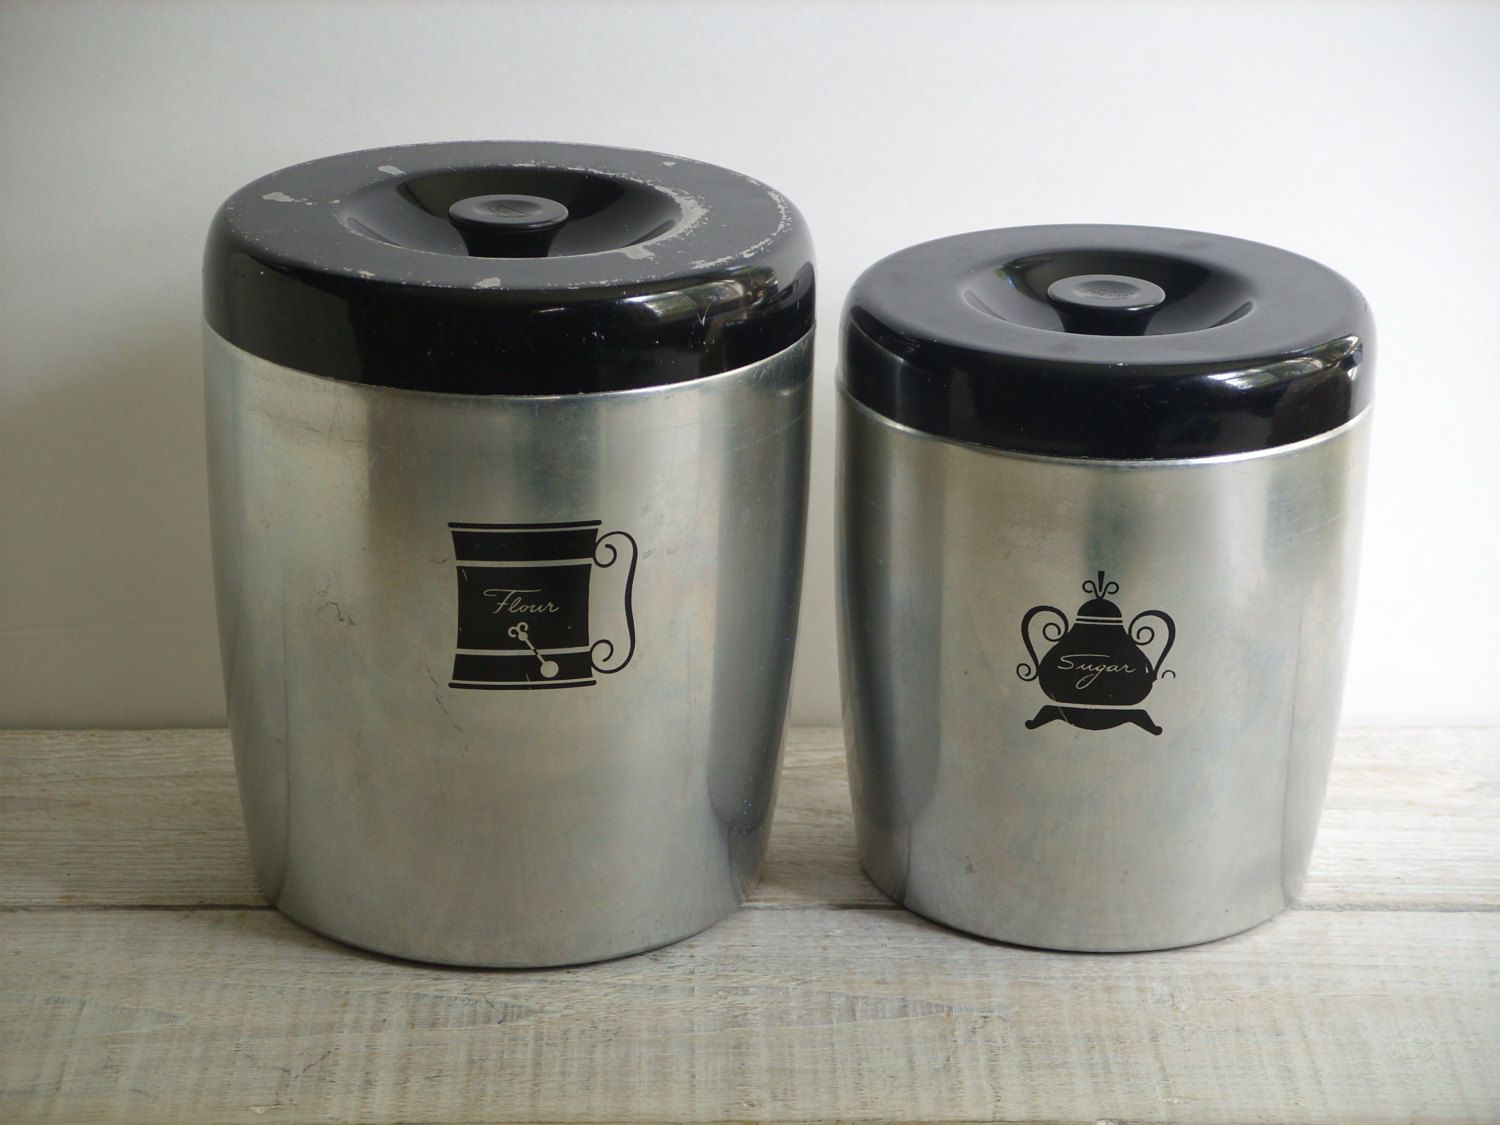 kitchen storage canisters upholstered chairs vintage west bend canister set flour sugar pantry metal